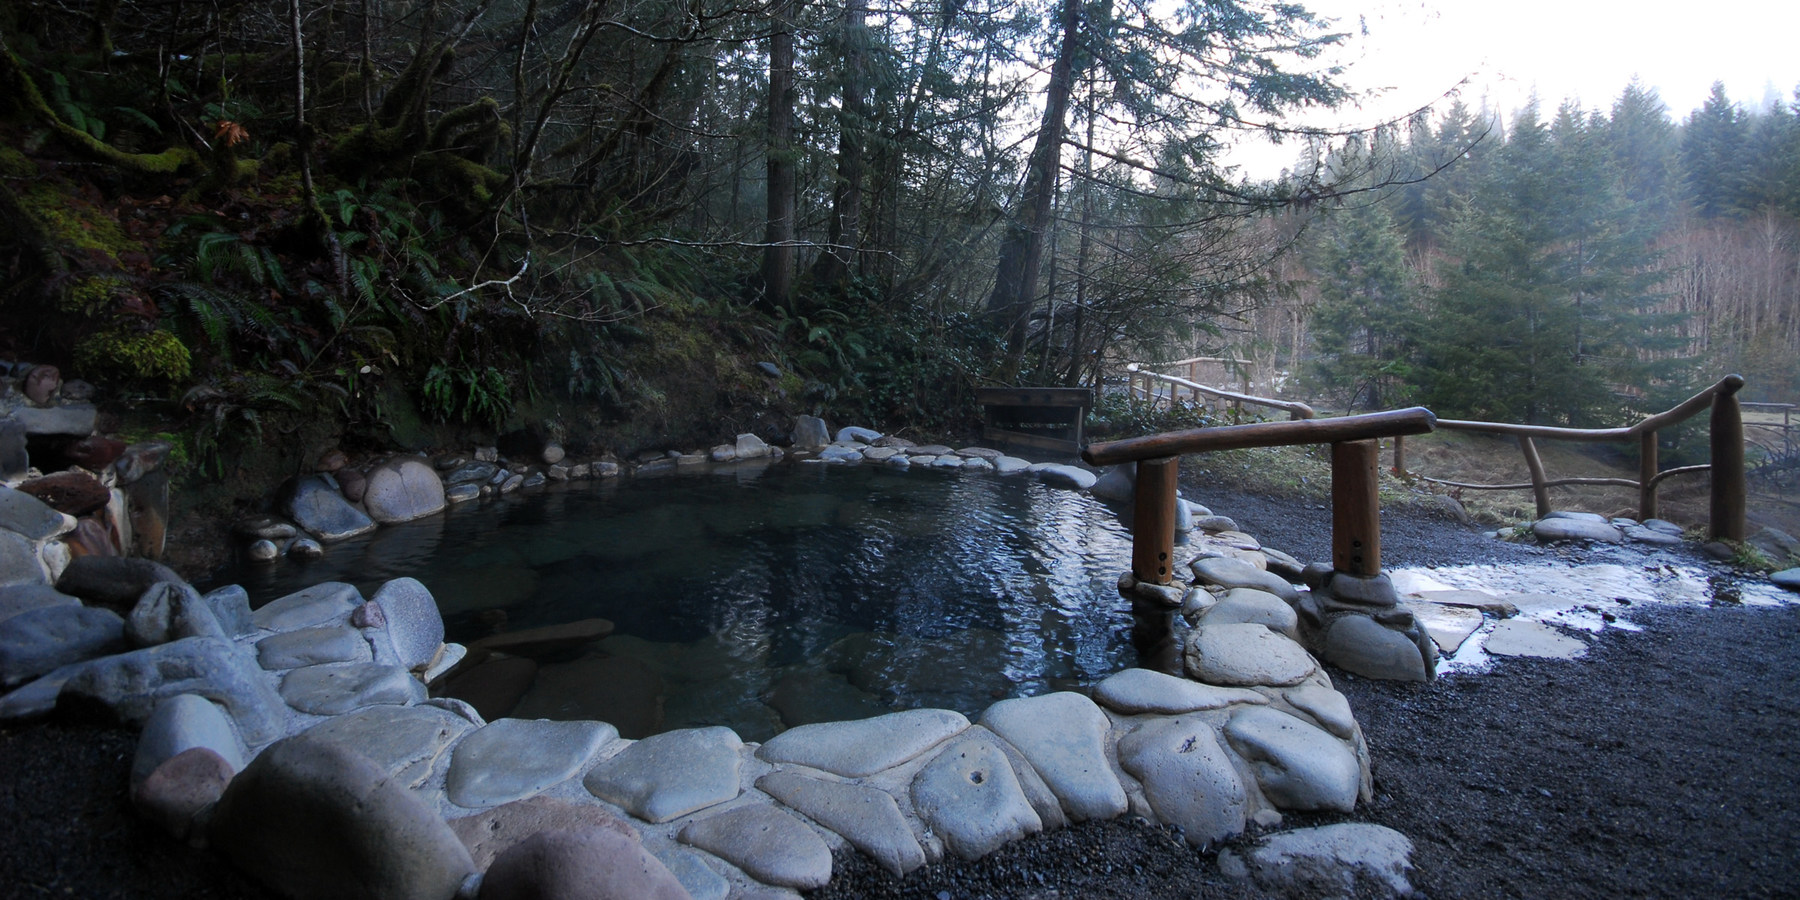 99 Store Near Me >> Oregon's Best Hot Springs - Outdoor Project